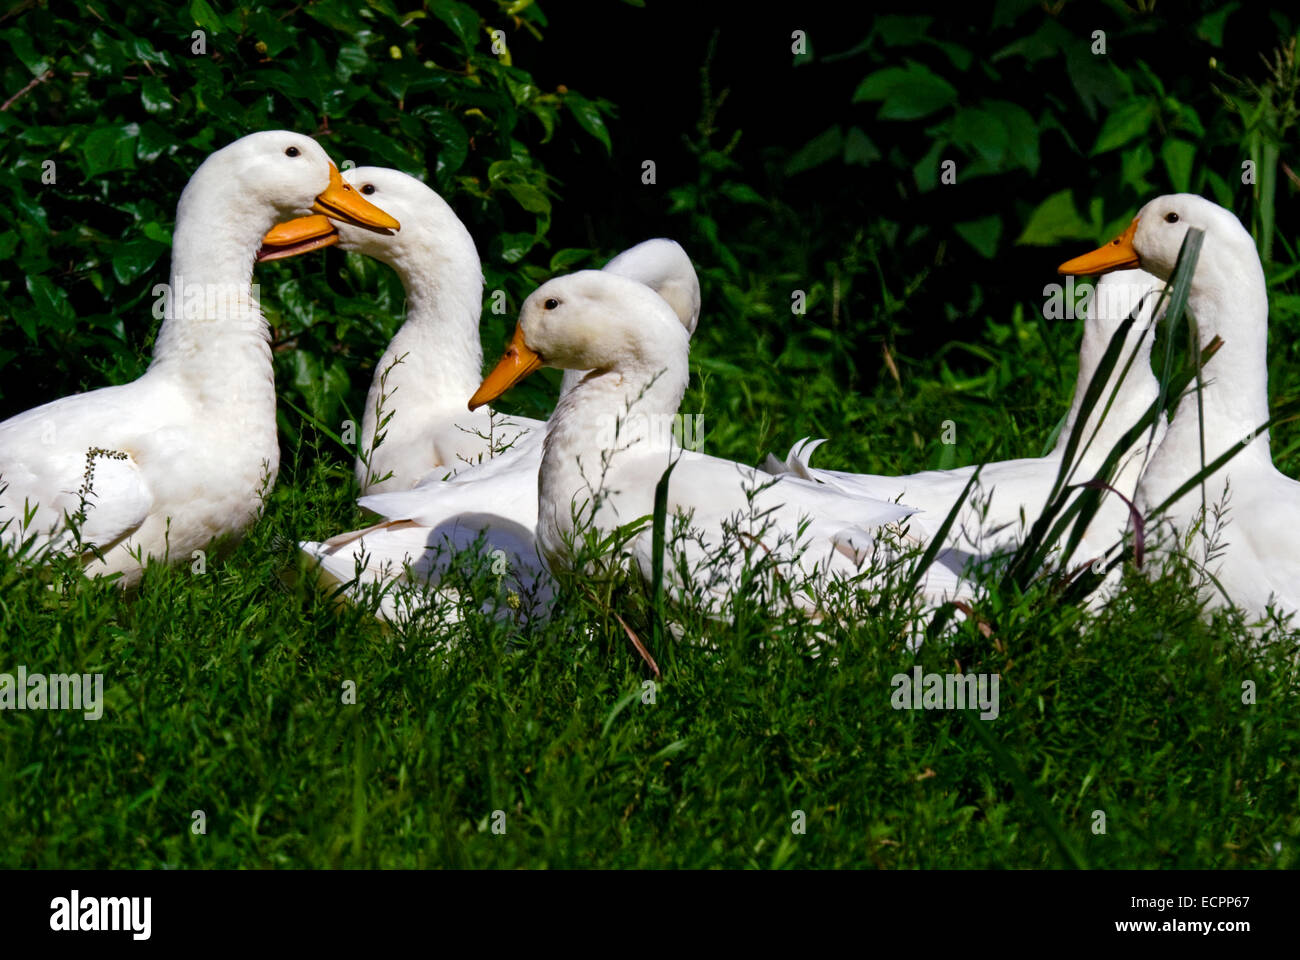 A group of Pekin ducks in some grass, near a pond adjacent to Lake Monroe, Indiana, USA. - Stock Image